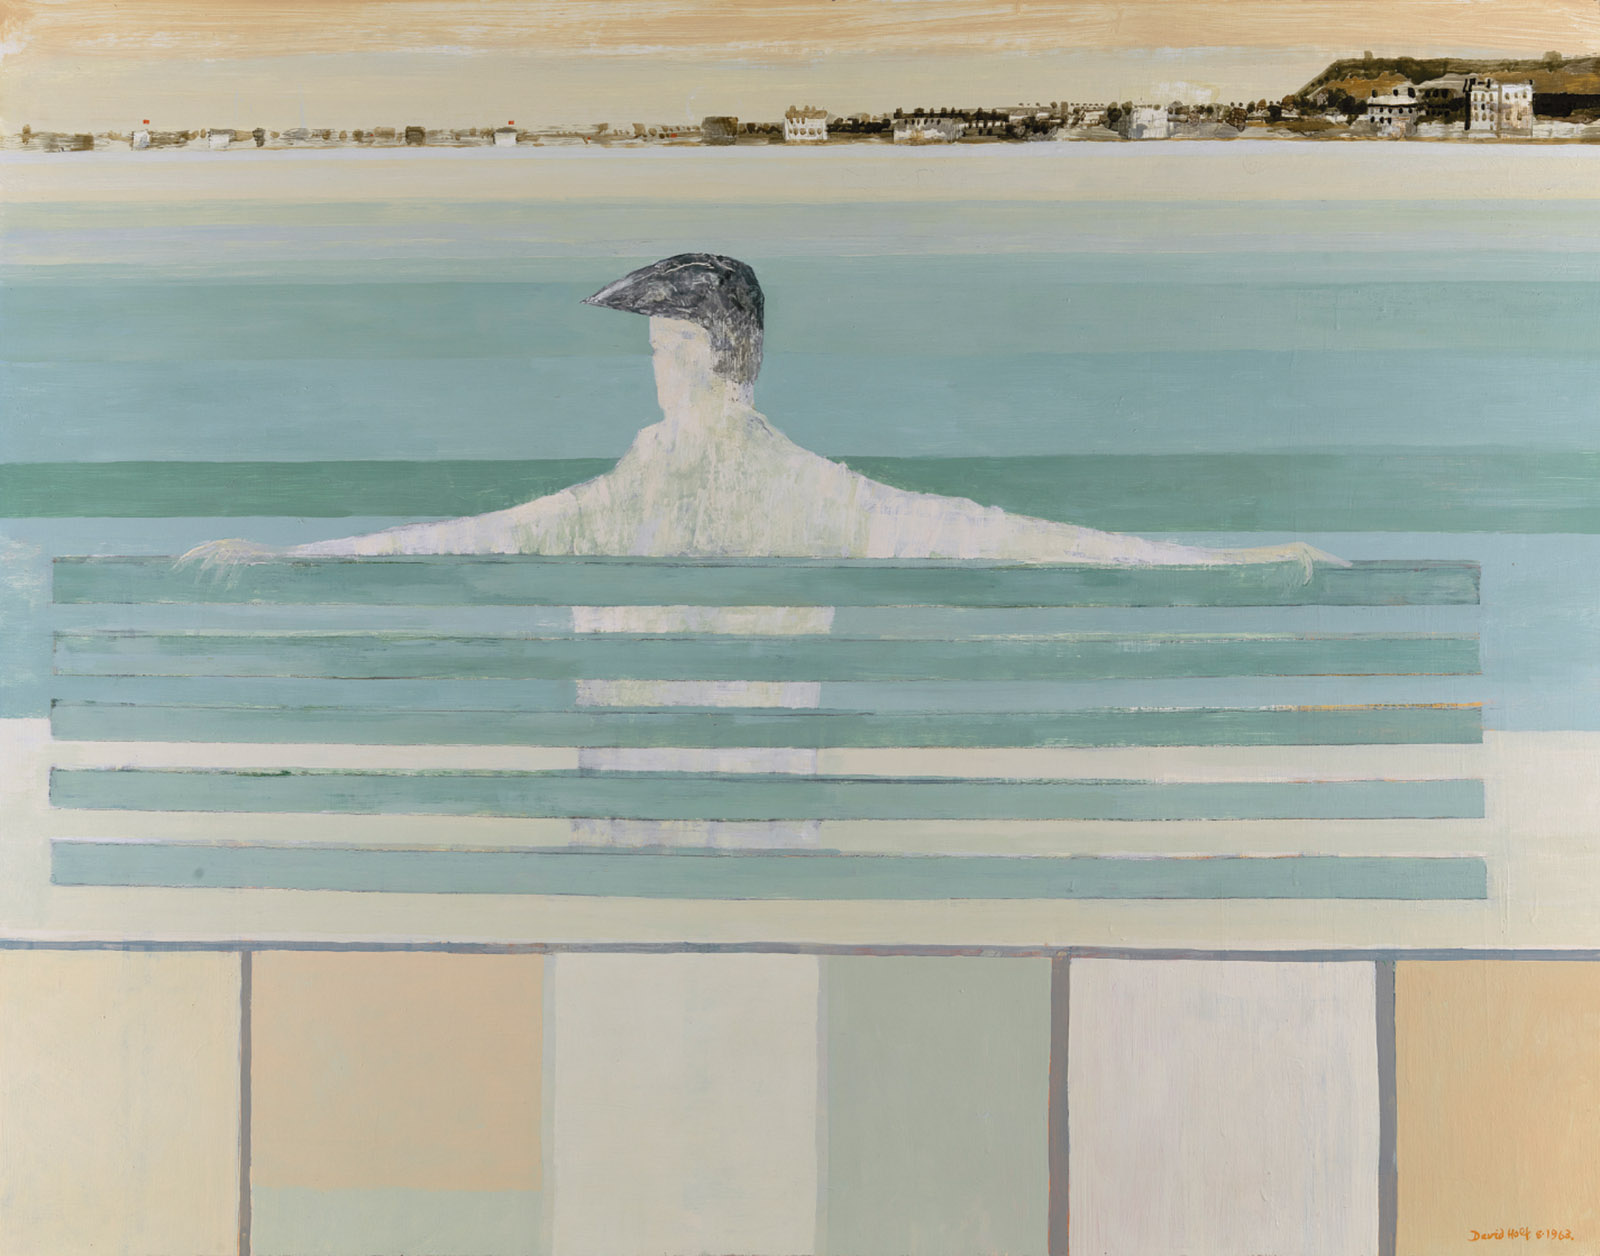 David Holt: Coastal Watcher, 1963; from Modernism and Memory: Rhoda Pritzker and the Art of Collecting, the catalog of a recent exhibition at the Yale Center for British Art, edited by Ian Collins and Eleanor Hughes and published by Yale University Press